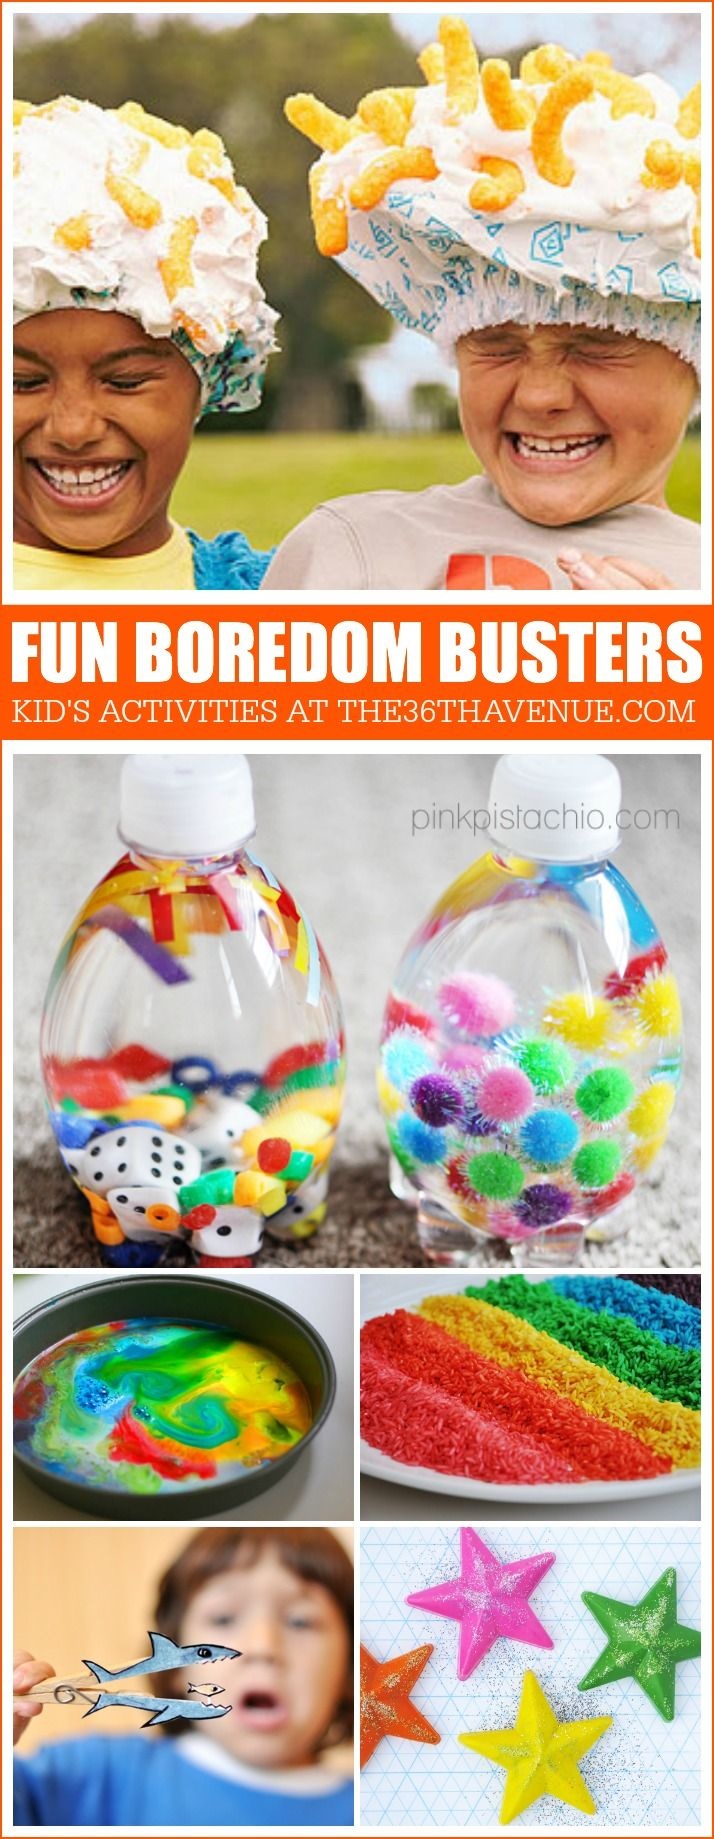 Peel your kids away from the television and have fun with these boredom busters that any kid would enjoy.